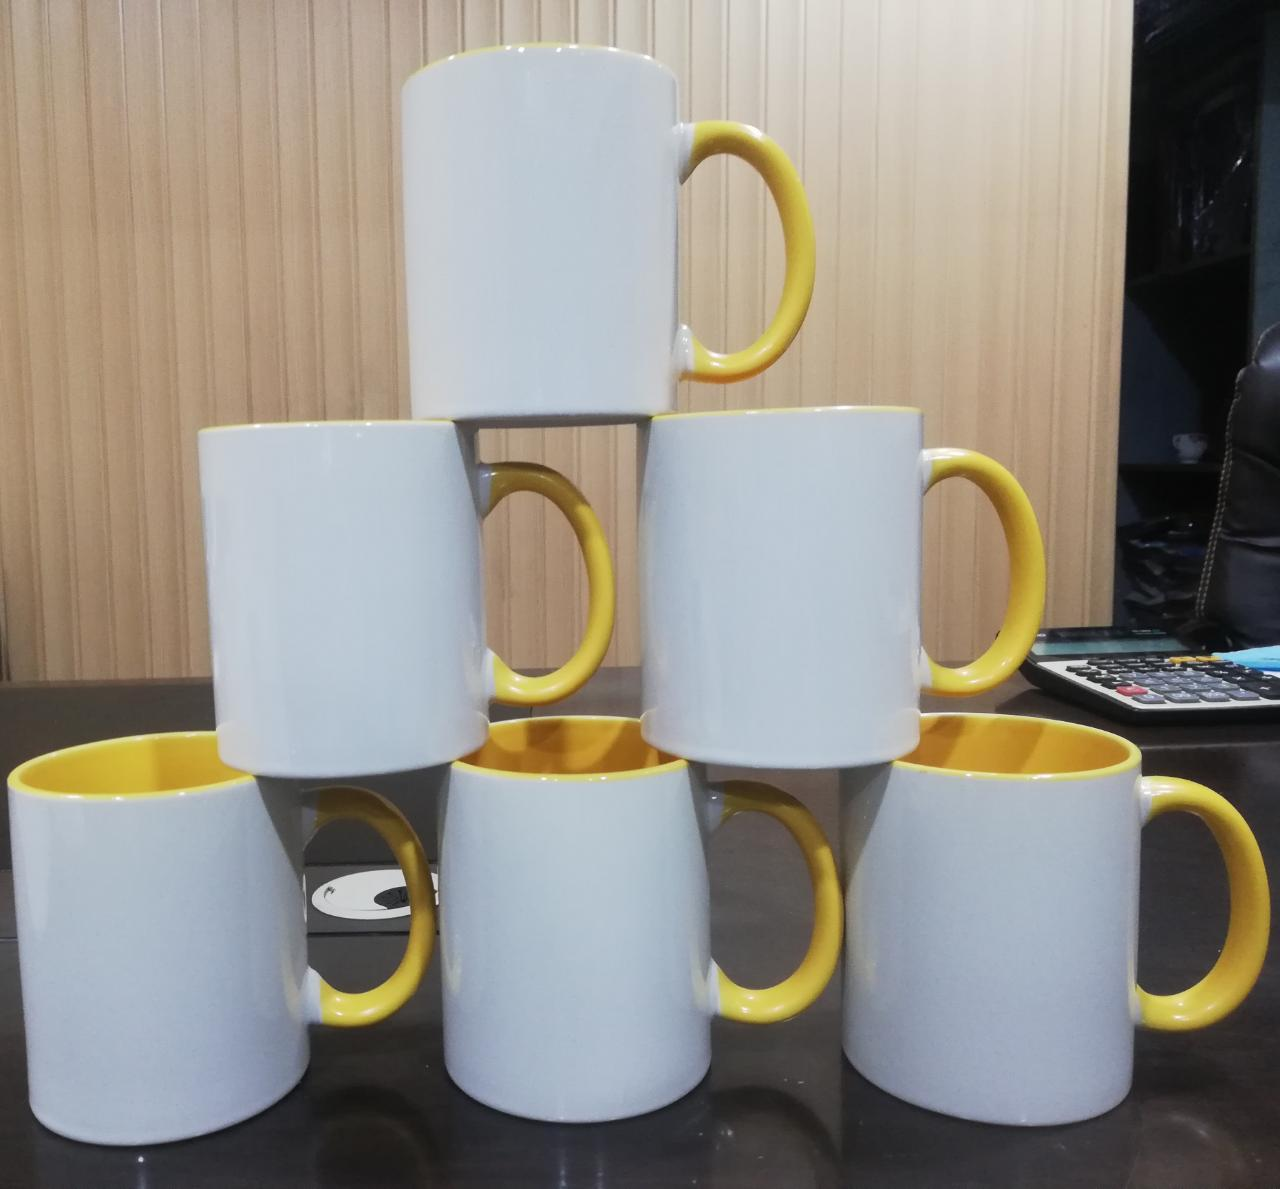 Buy MP Cups, Mugs & Saucers at Best Prices Online in